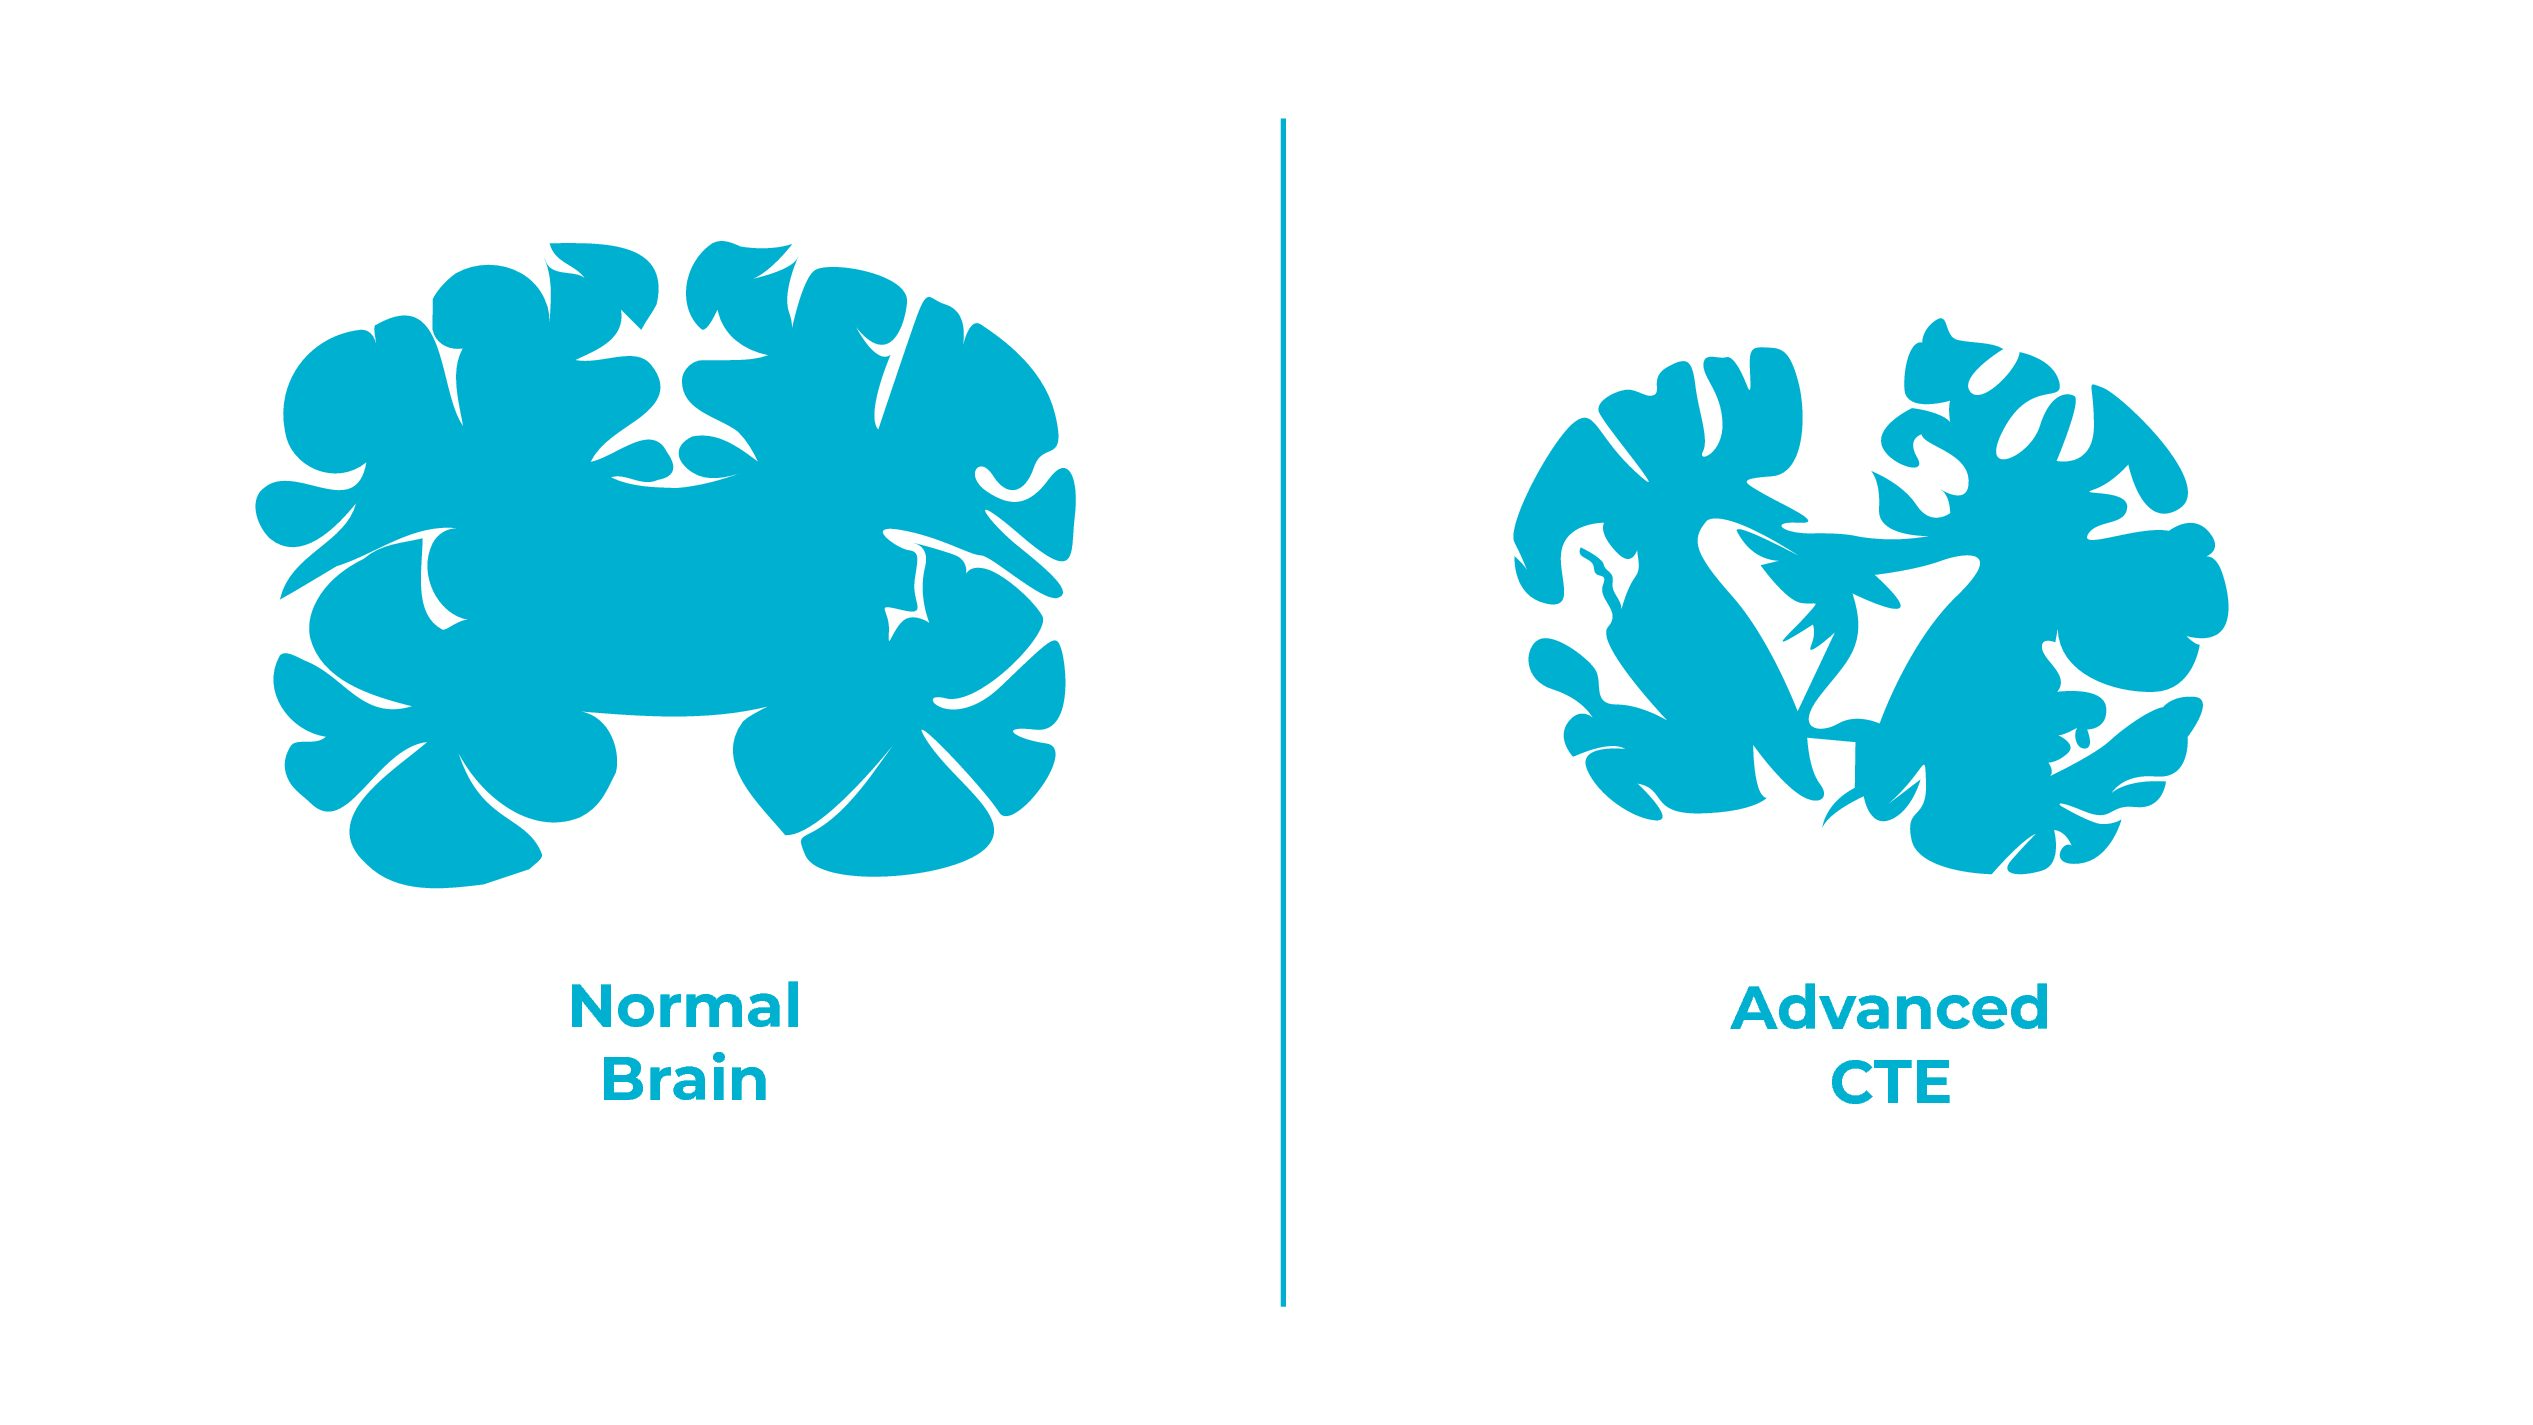 CTE found in athletes with severe brain trauma